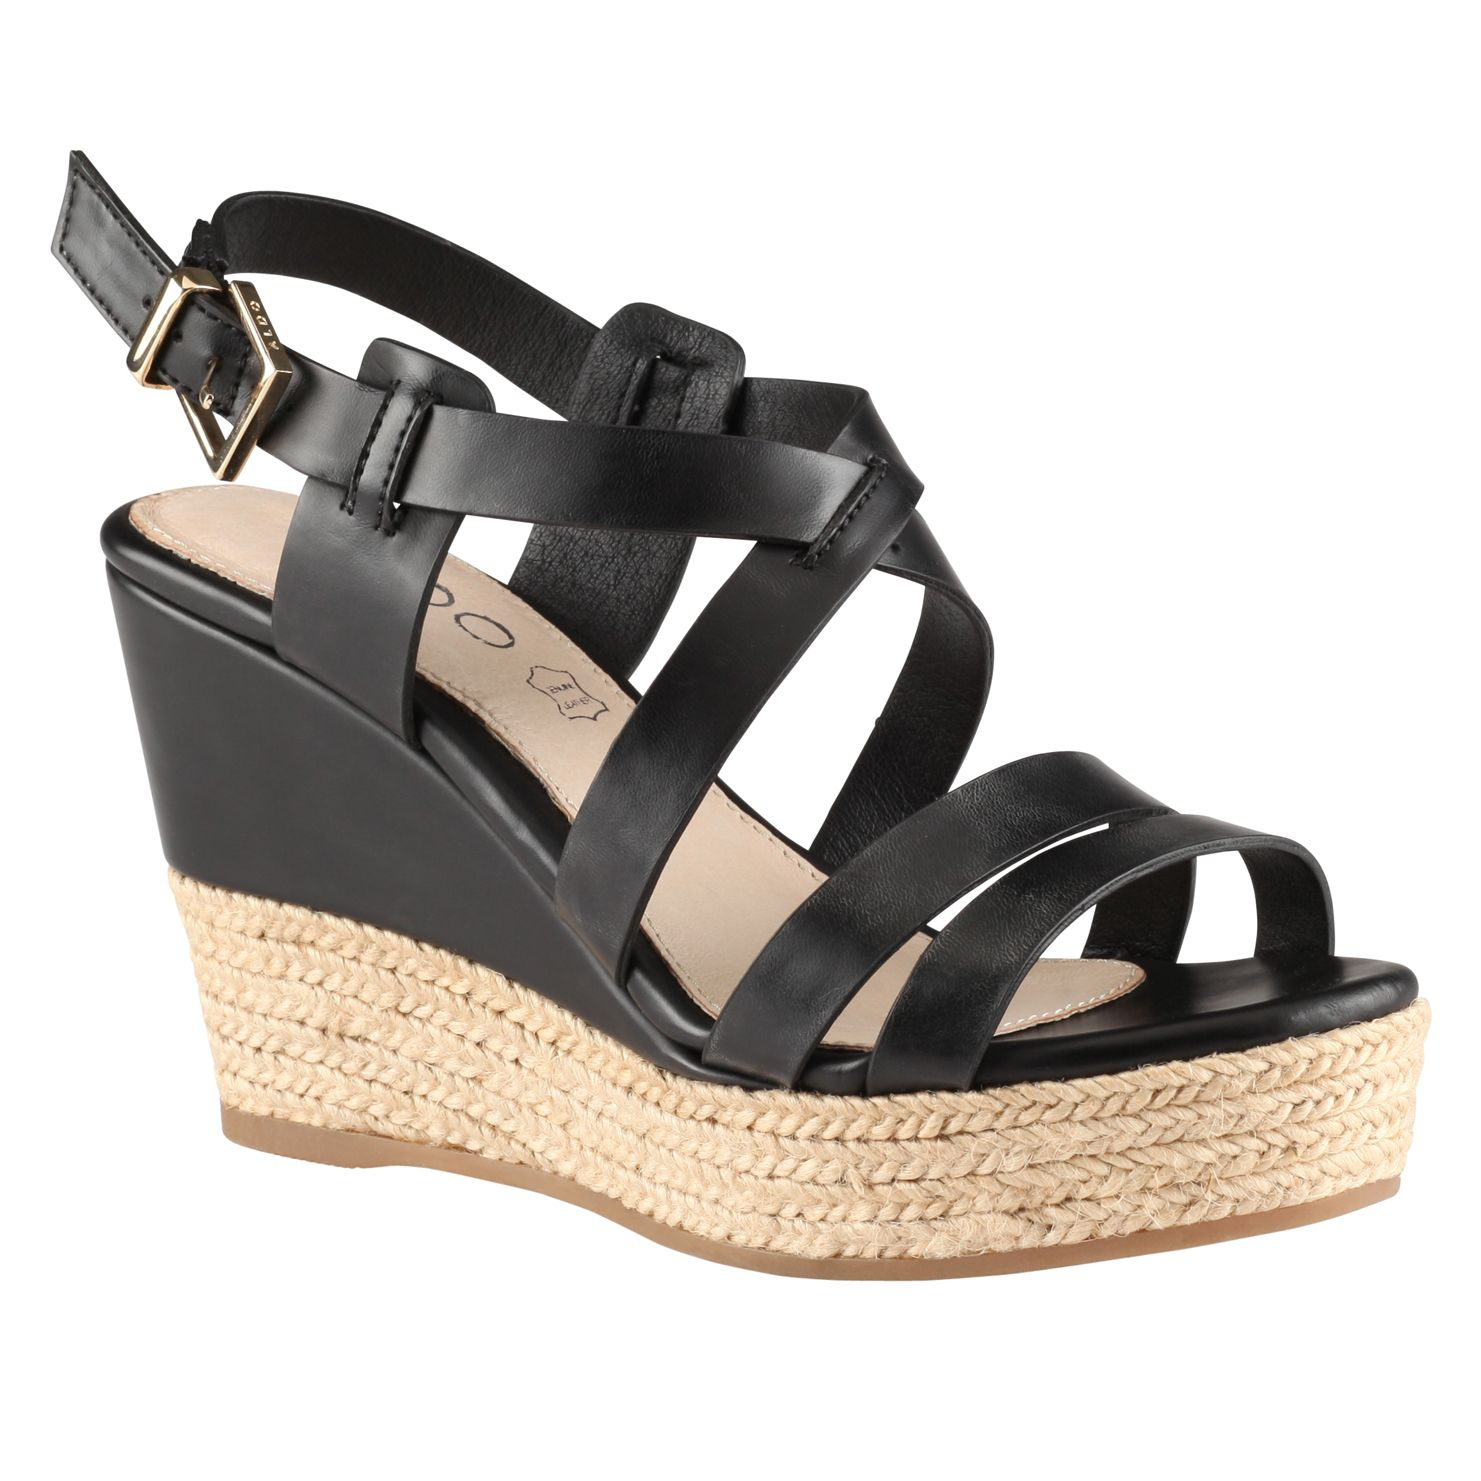 Frignani wedge strap sandals